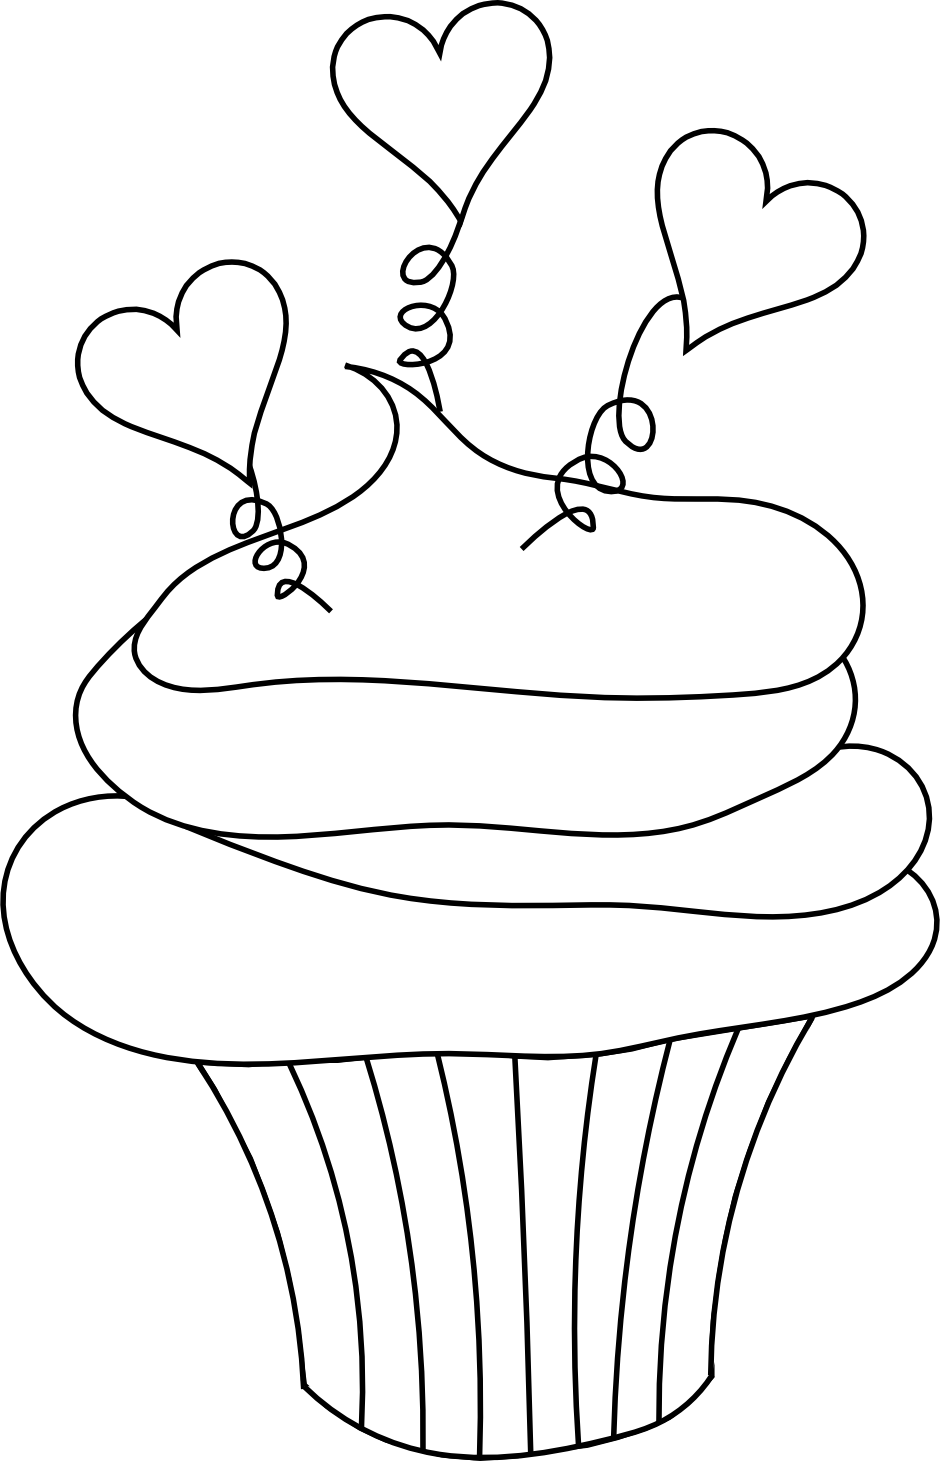 This Cupcake Image With Little Hearts Is Perfect For Valentine S Day Cupcake Coloring Pages Free Coloring Pages Digi Stamps Free